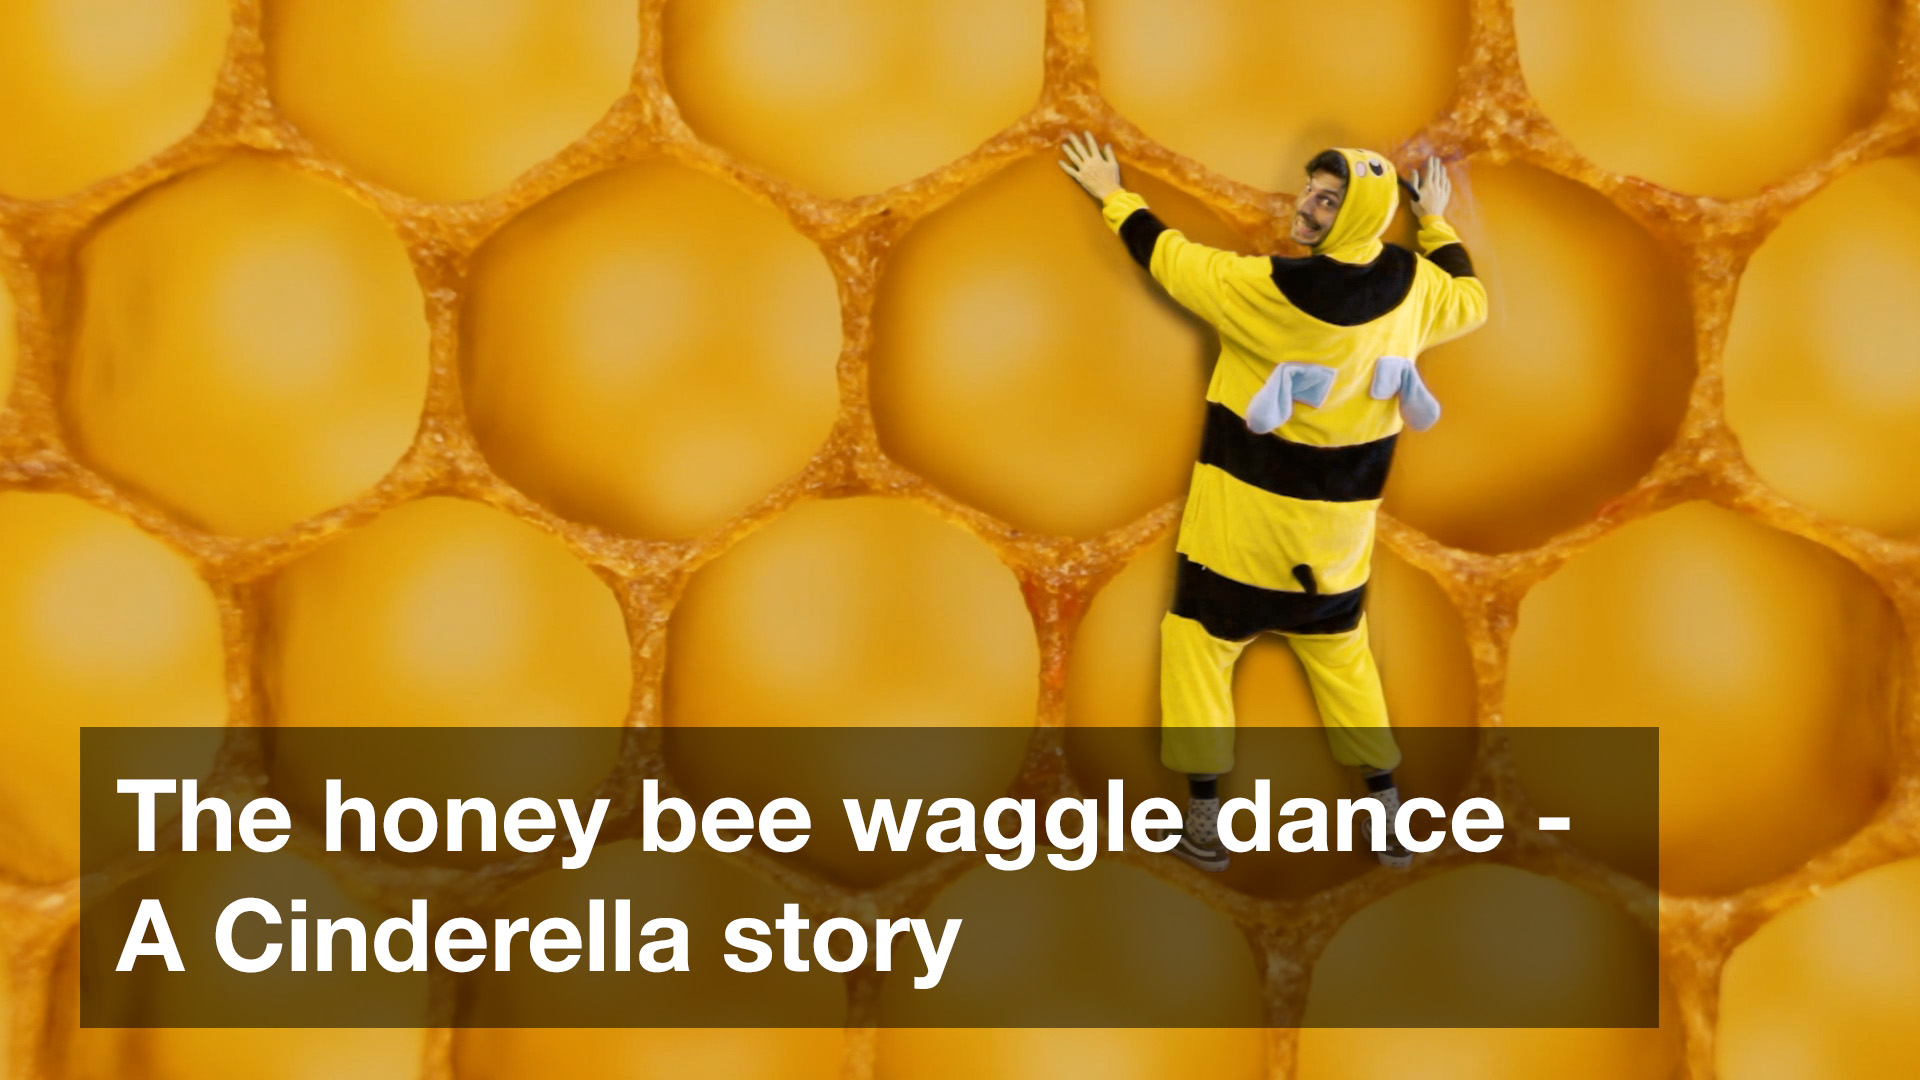 The honey bee waggle dance - A Cinderella story